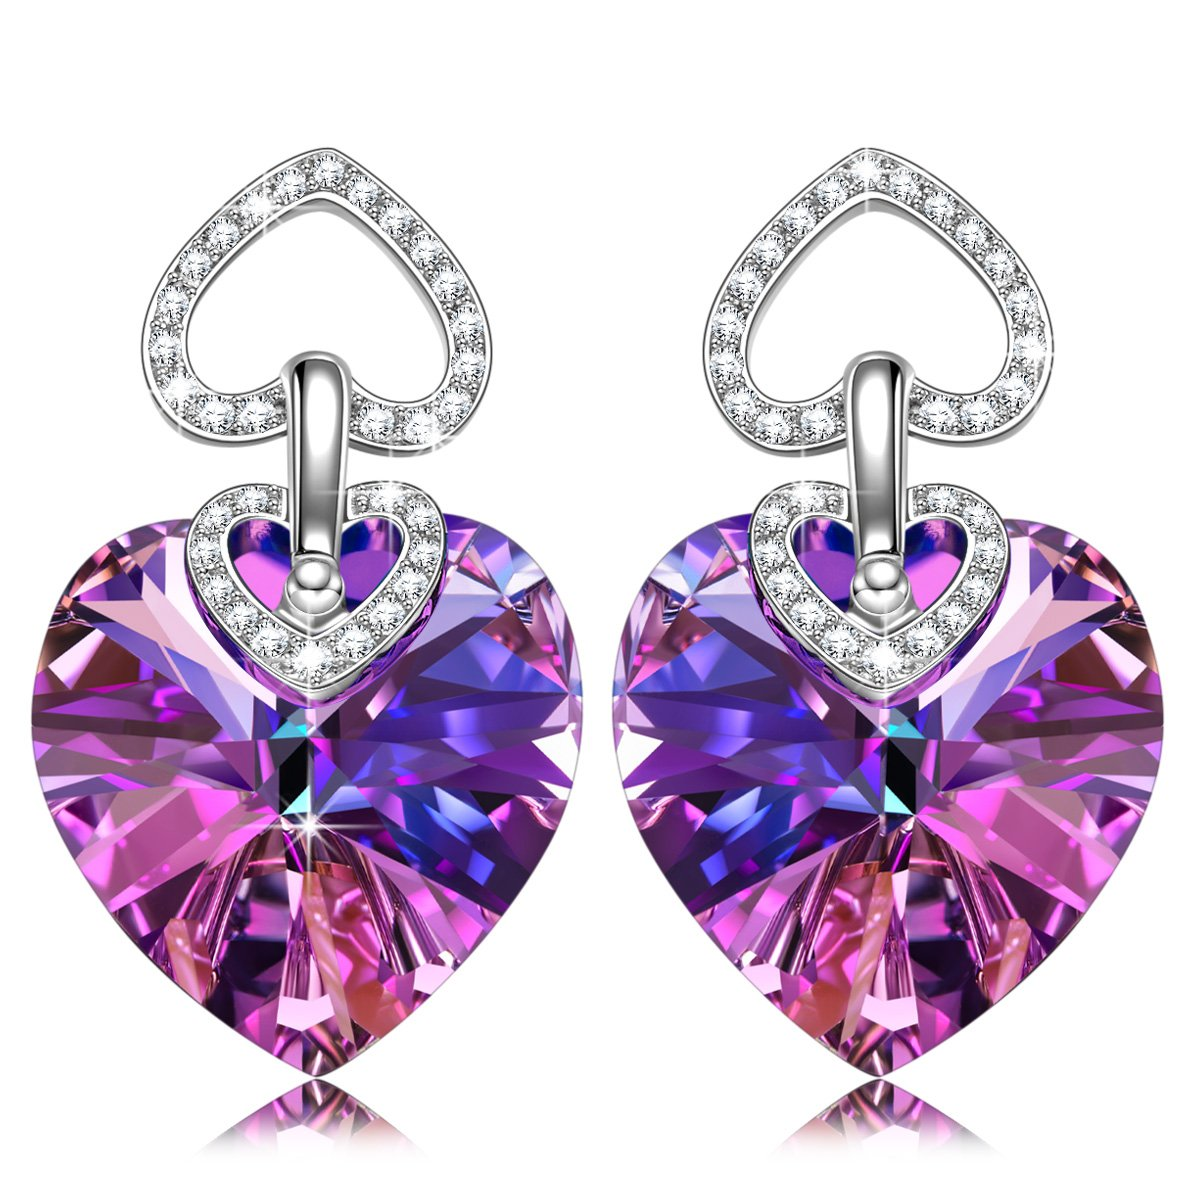 Hypoallergenic Heart Stud Earrings, ♥Christmas Jewelry Gifts for ...